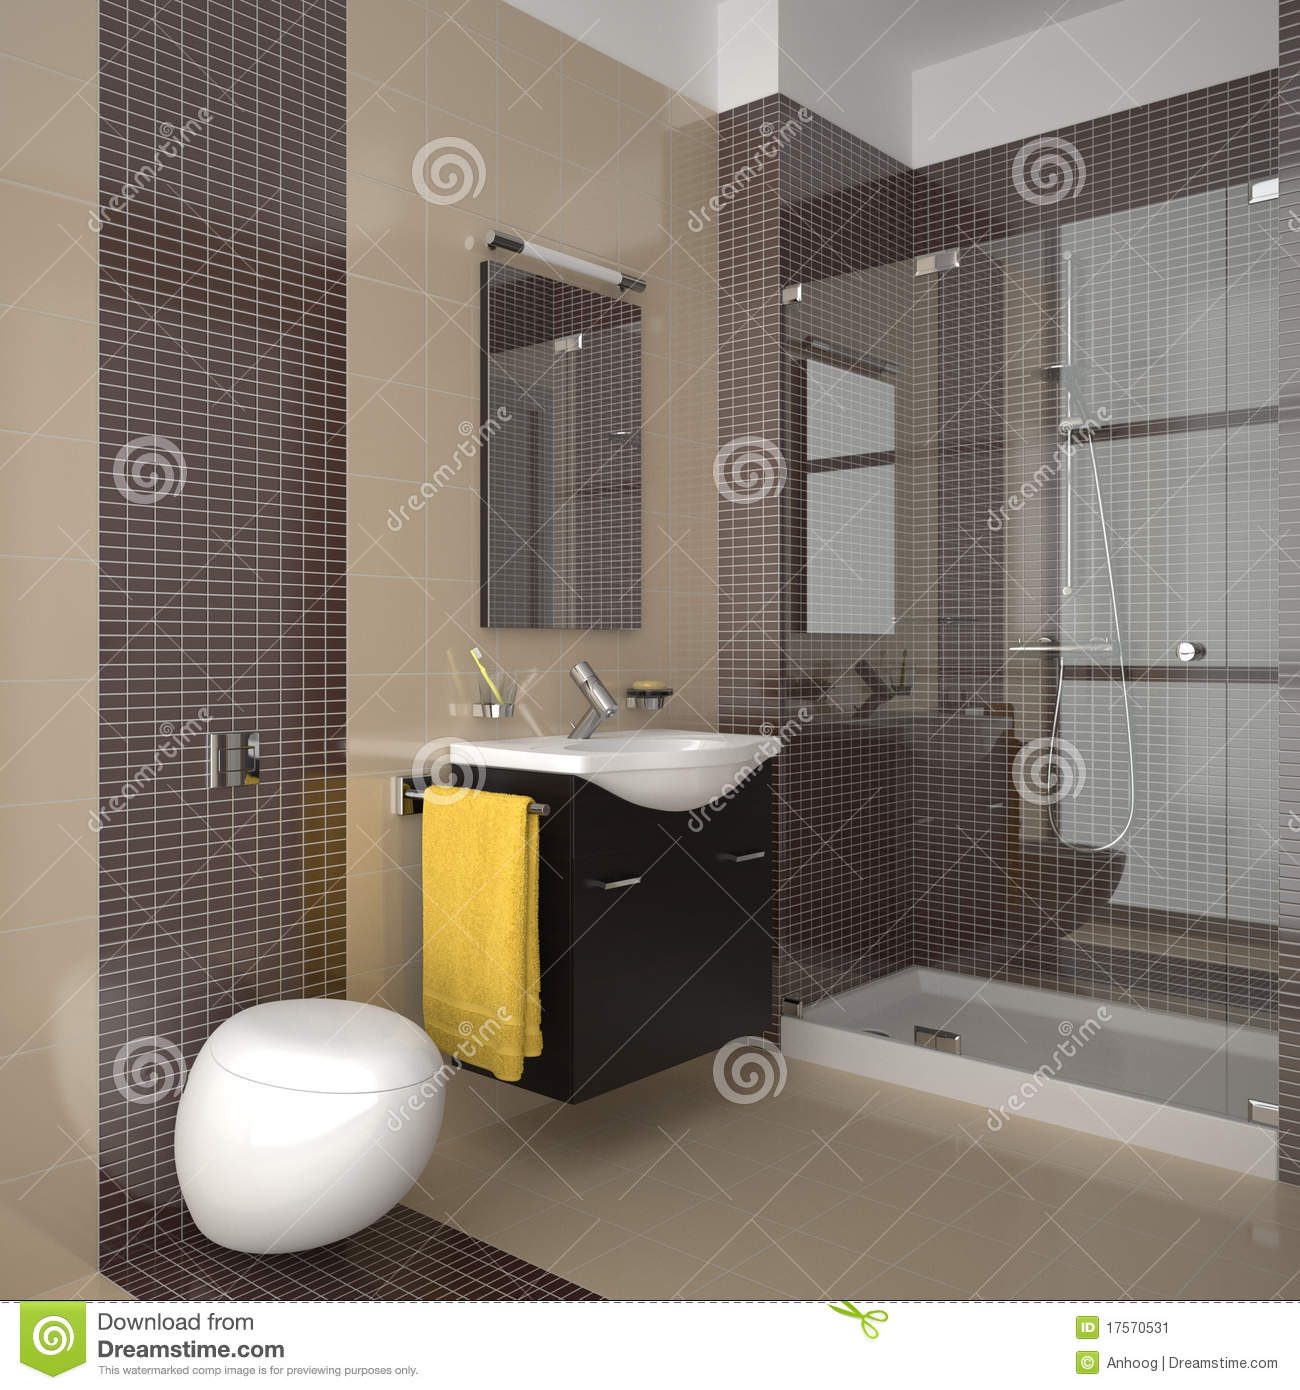 Modern bathroom with beige and brown tiles stock illustration image 17570531 Beige brown bathroom design